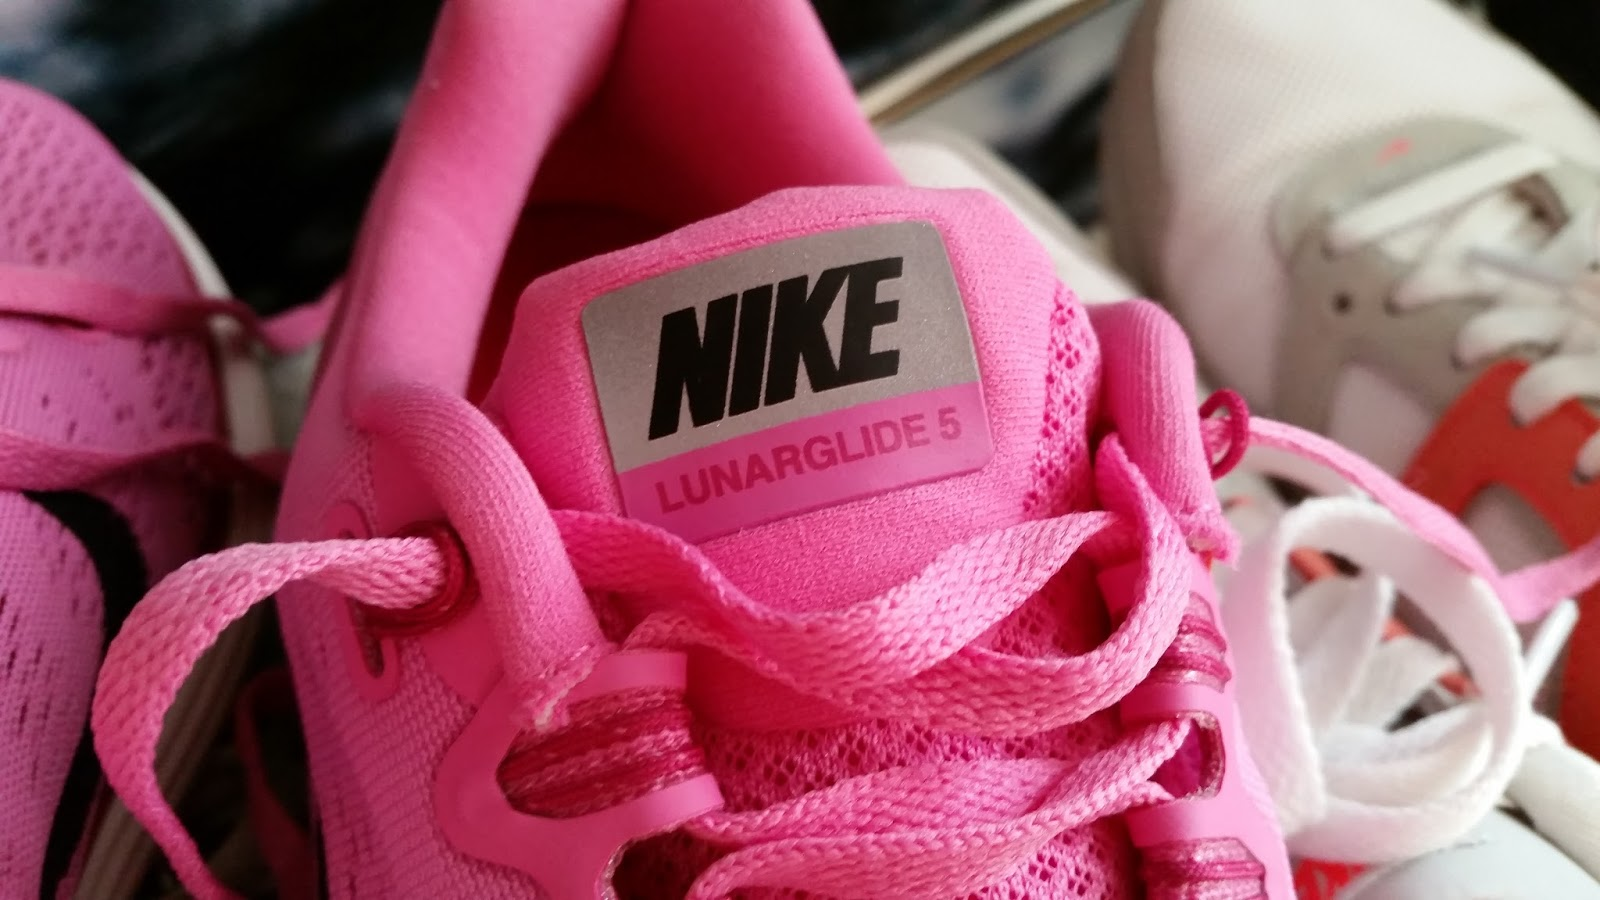 nike lunarglide 5, pink, runner, just do it